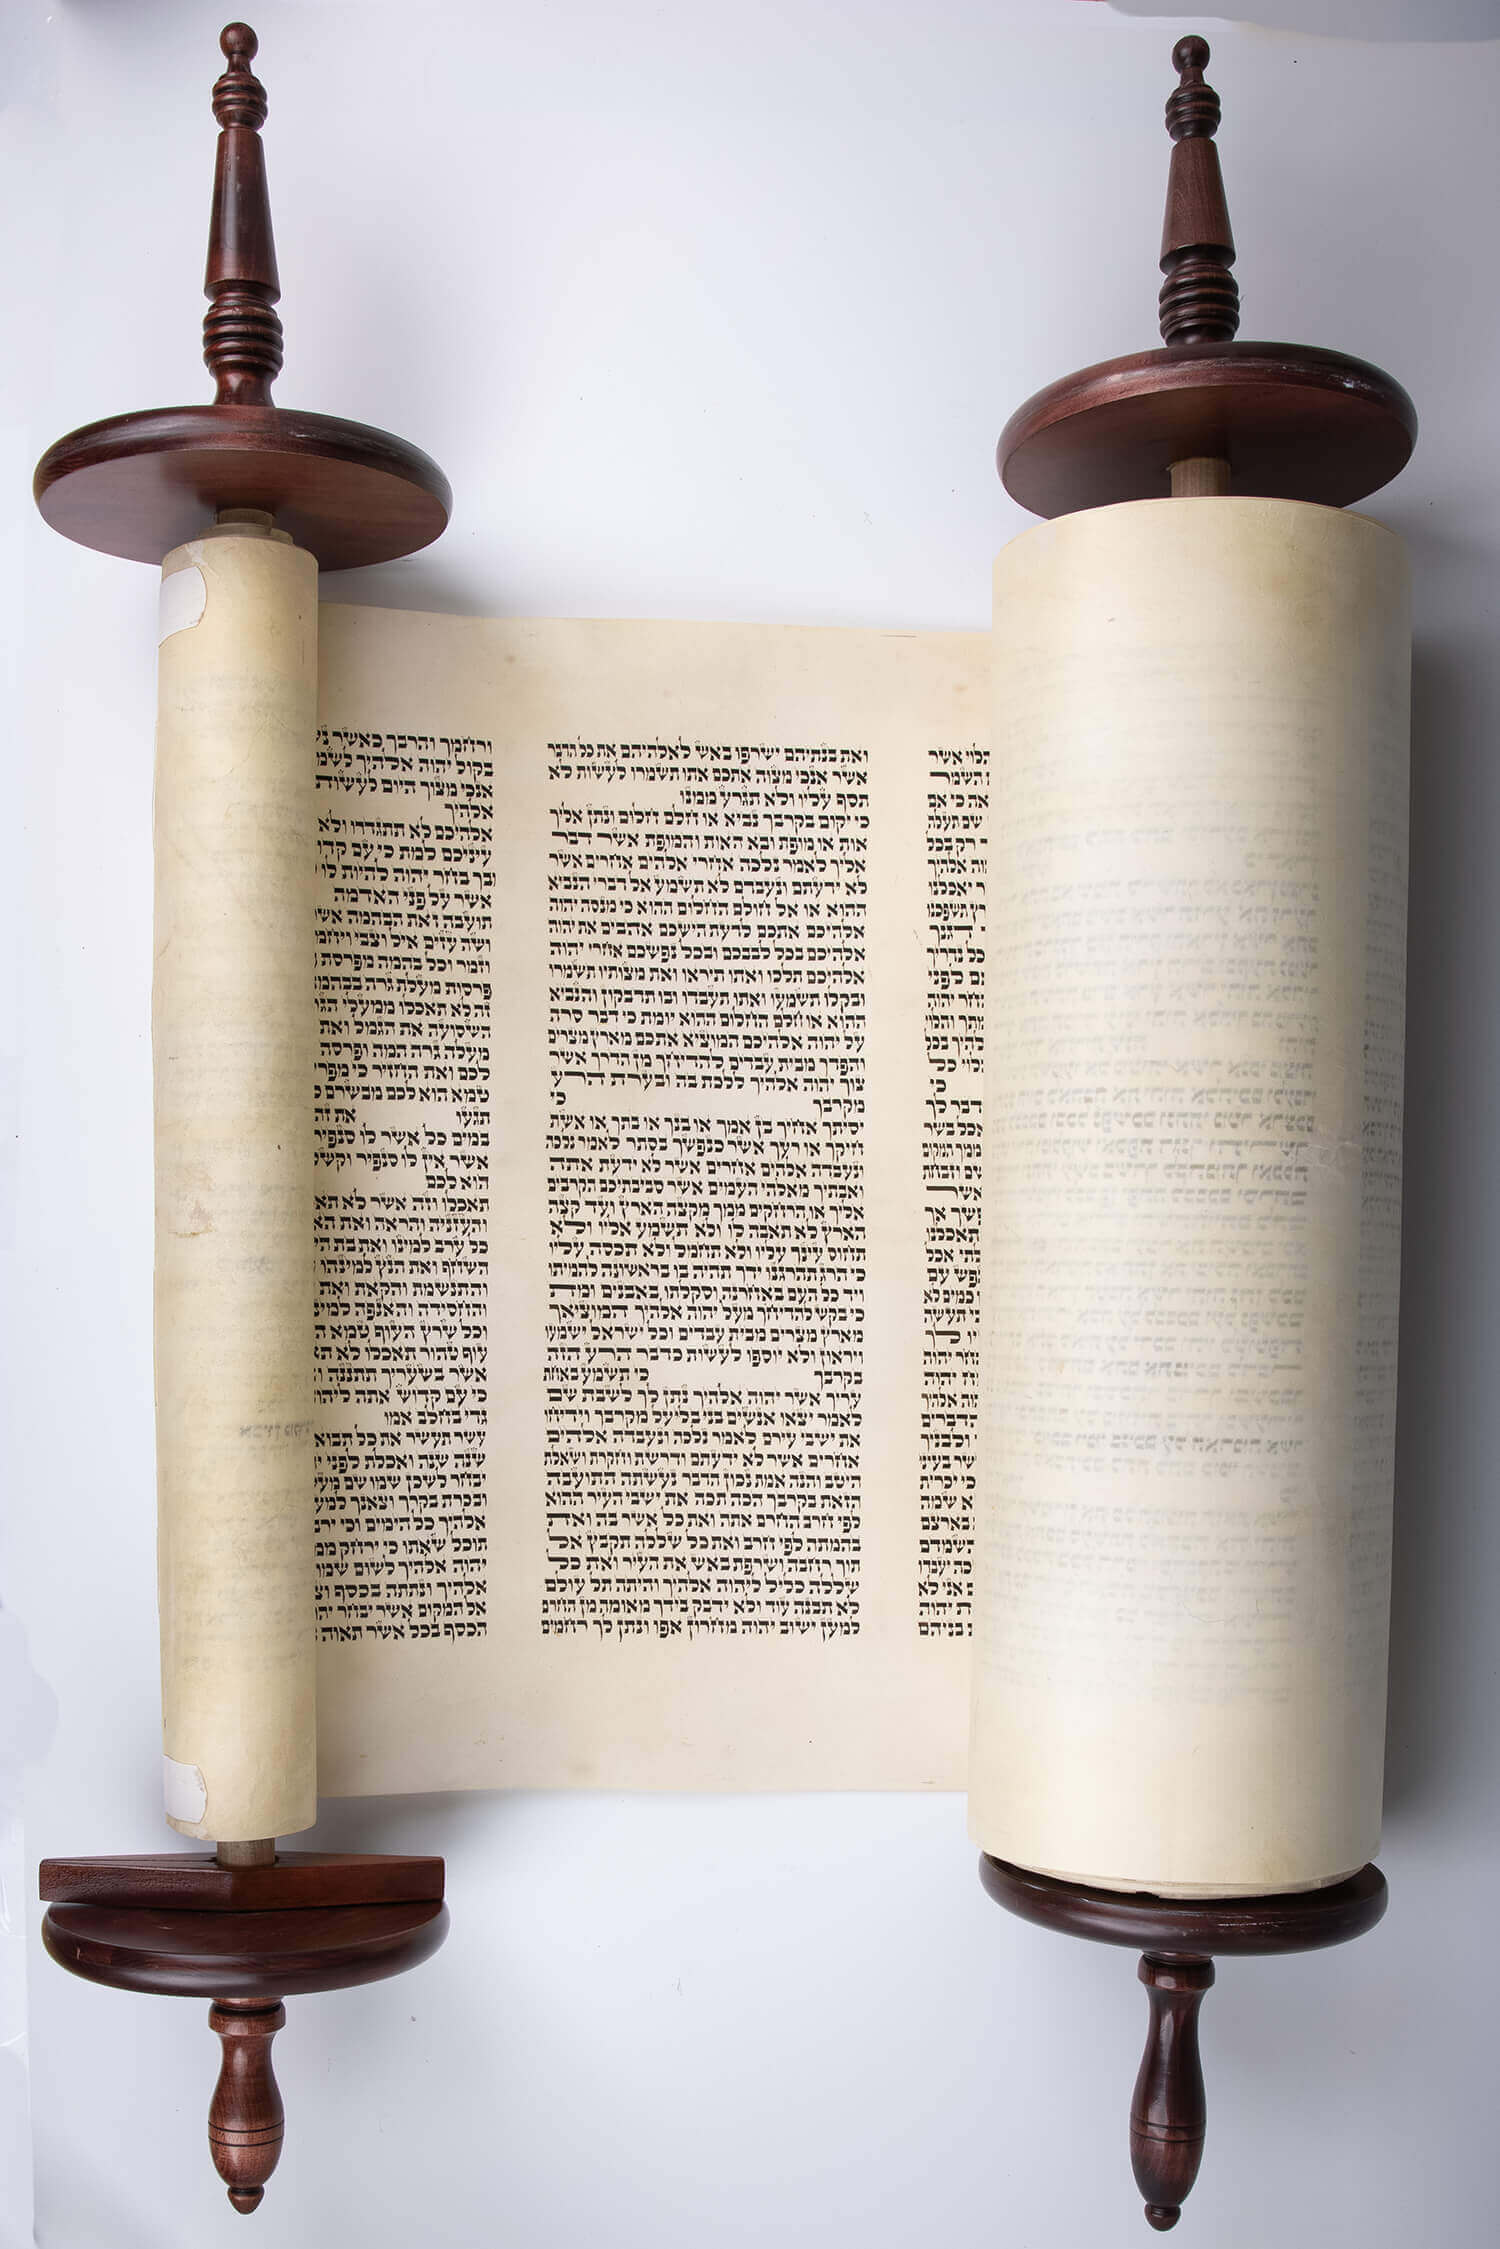 082. A LARGE SEFER TORAH